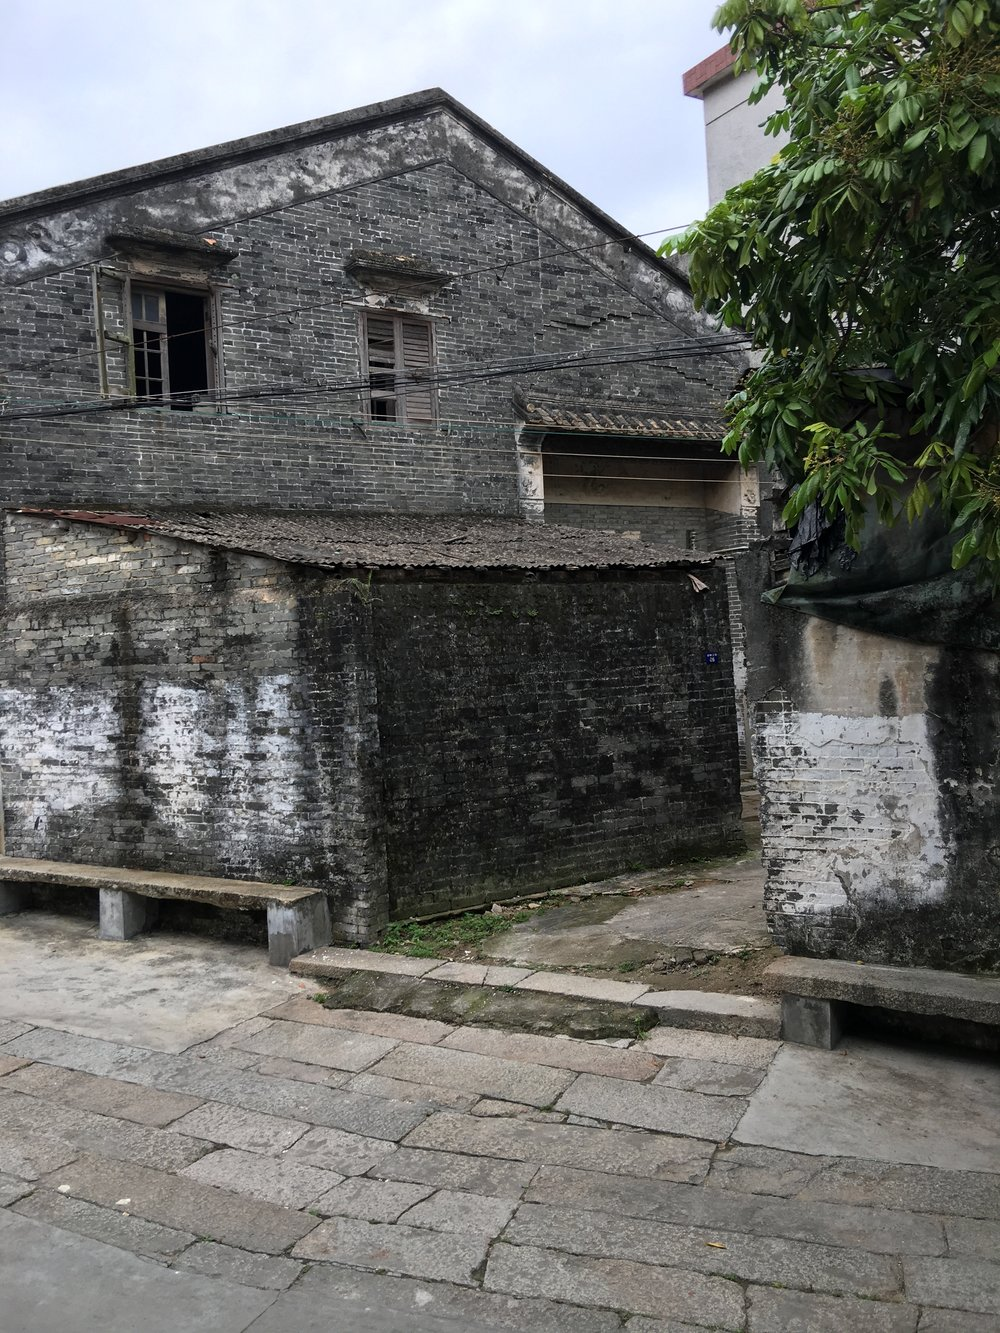 Cheong family house, Guhe